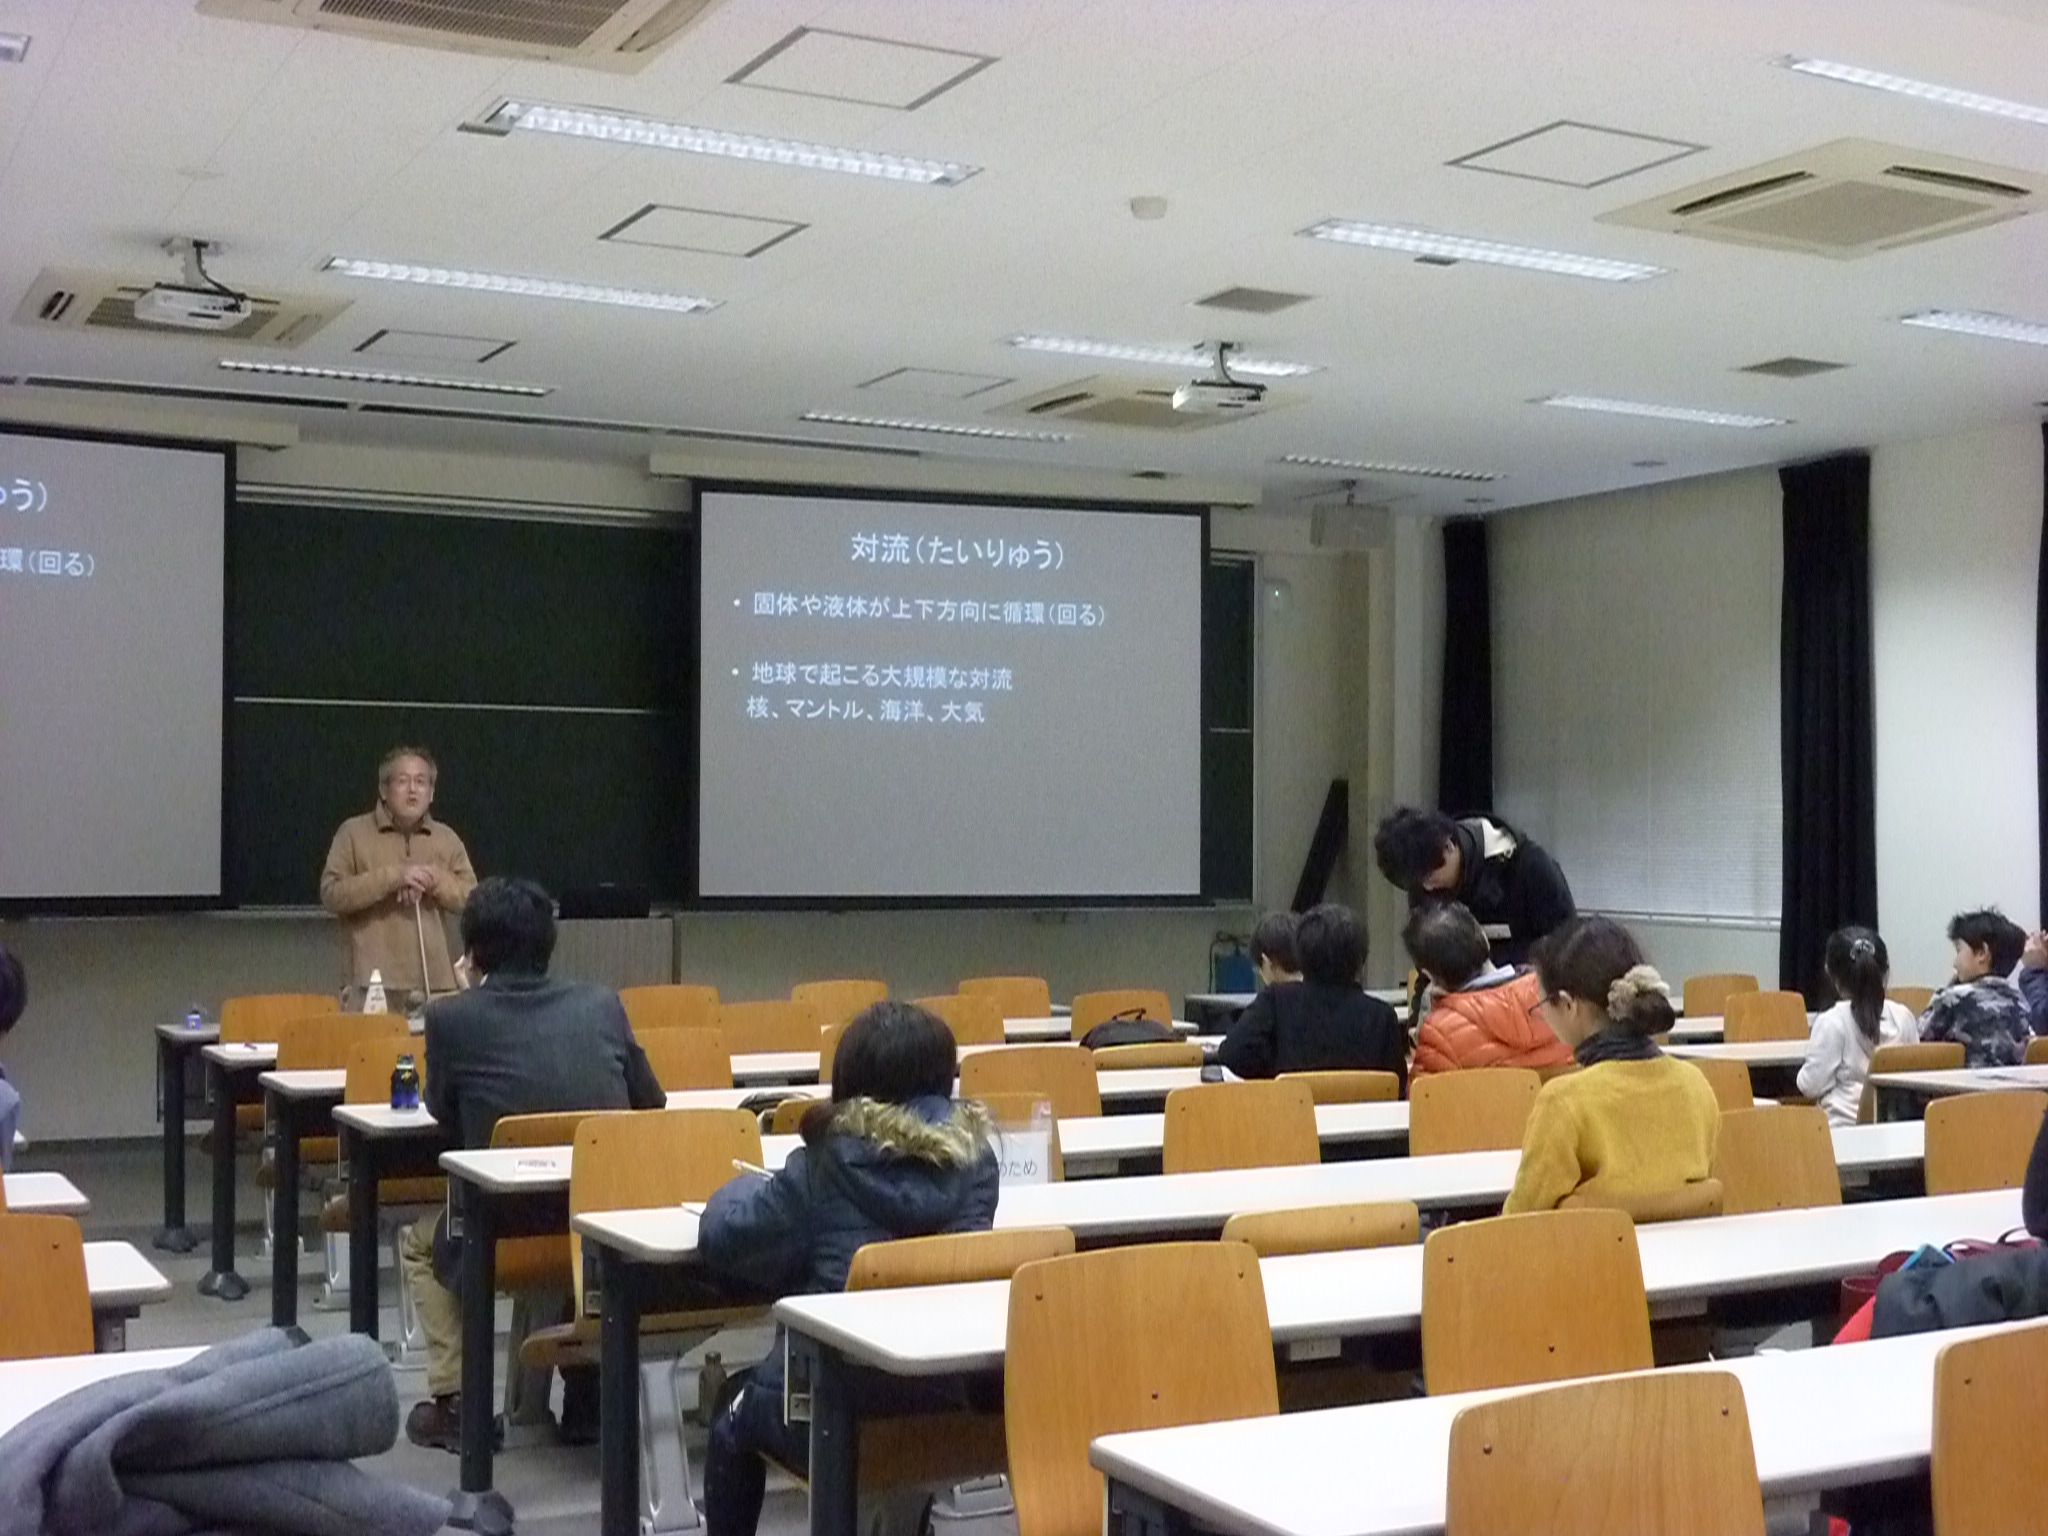 A20100424_Opening